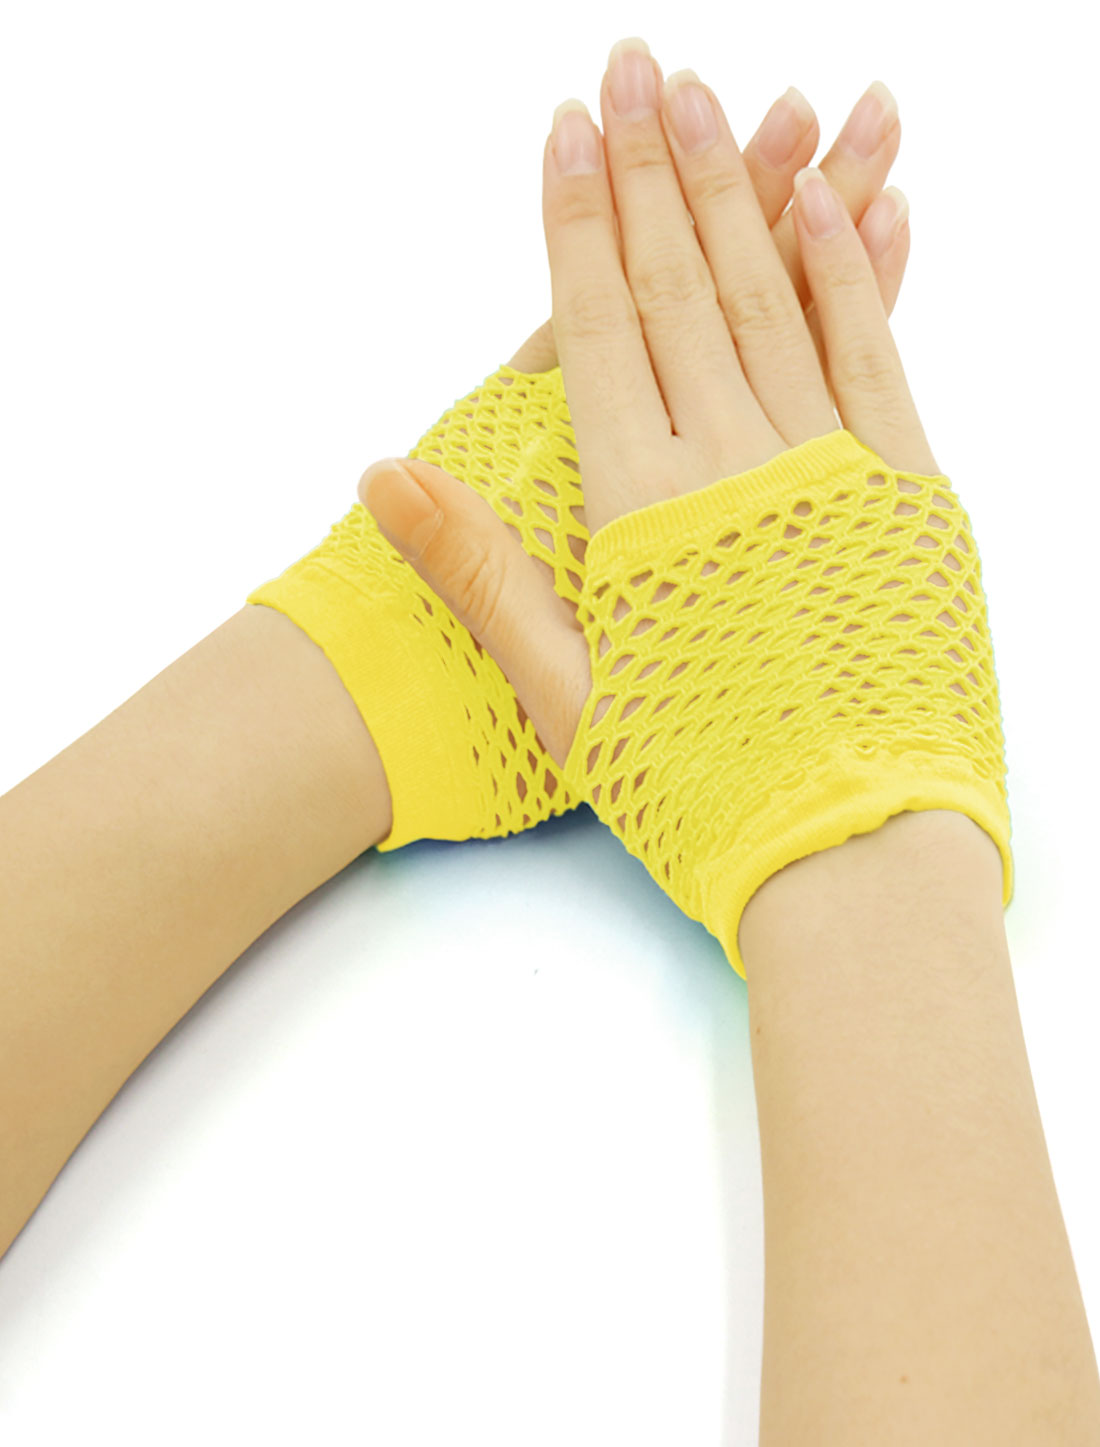 Women Wrist Length Stretchy Fingerless Fishnet Gloves 2 Pairs Yellow